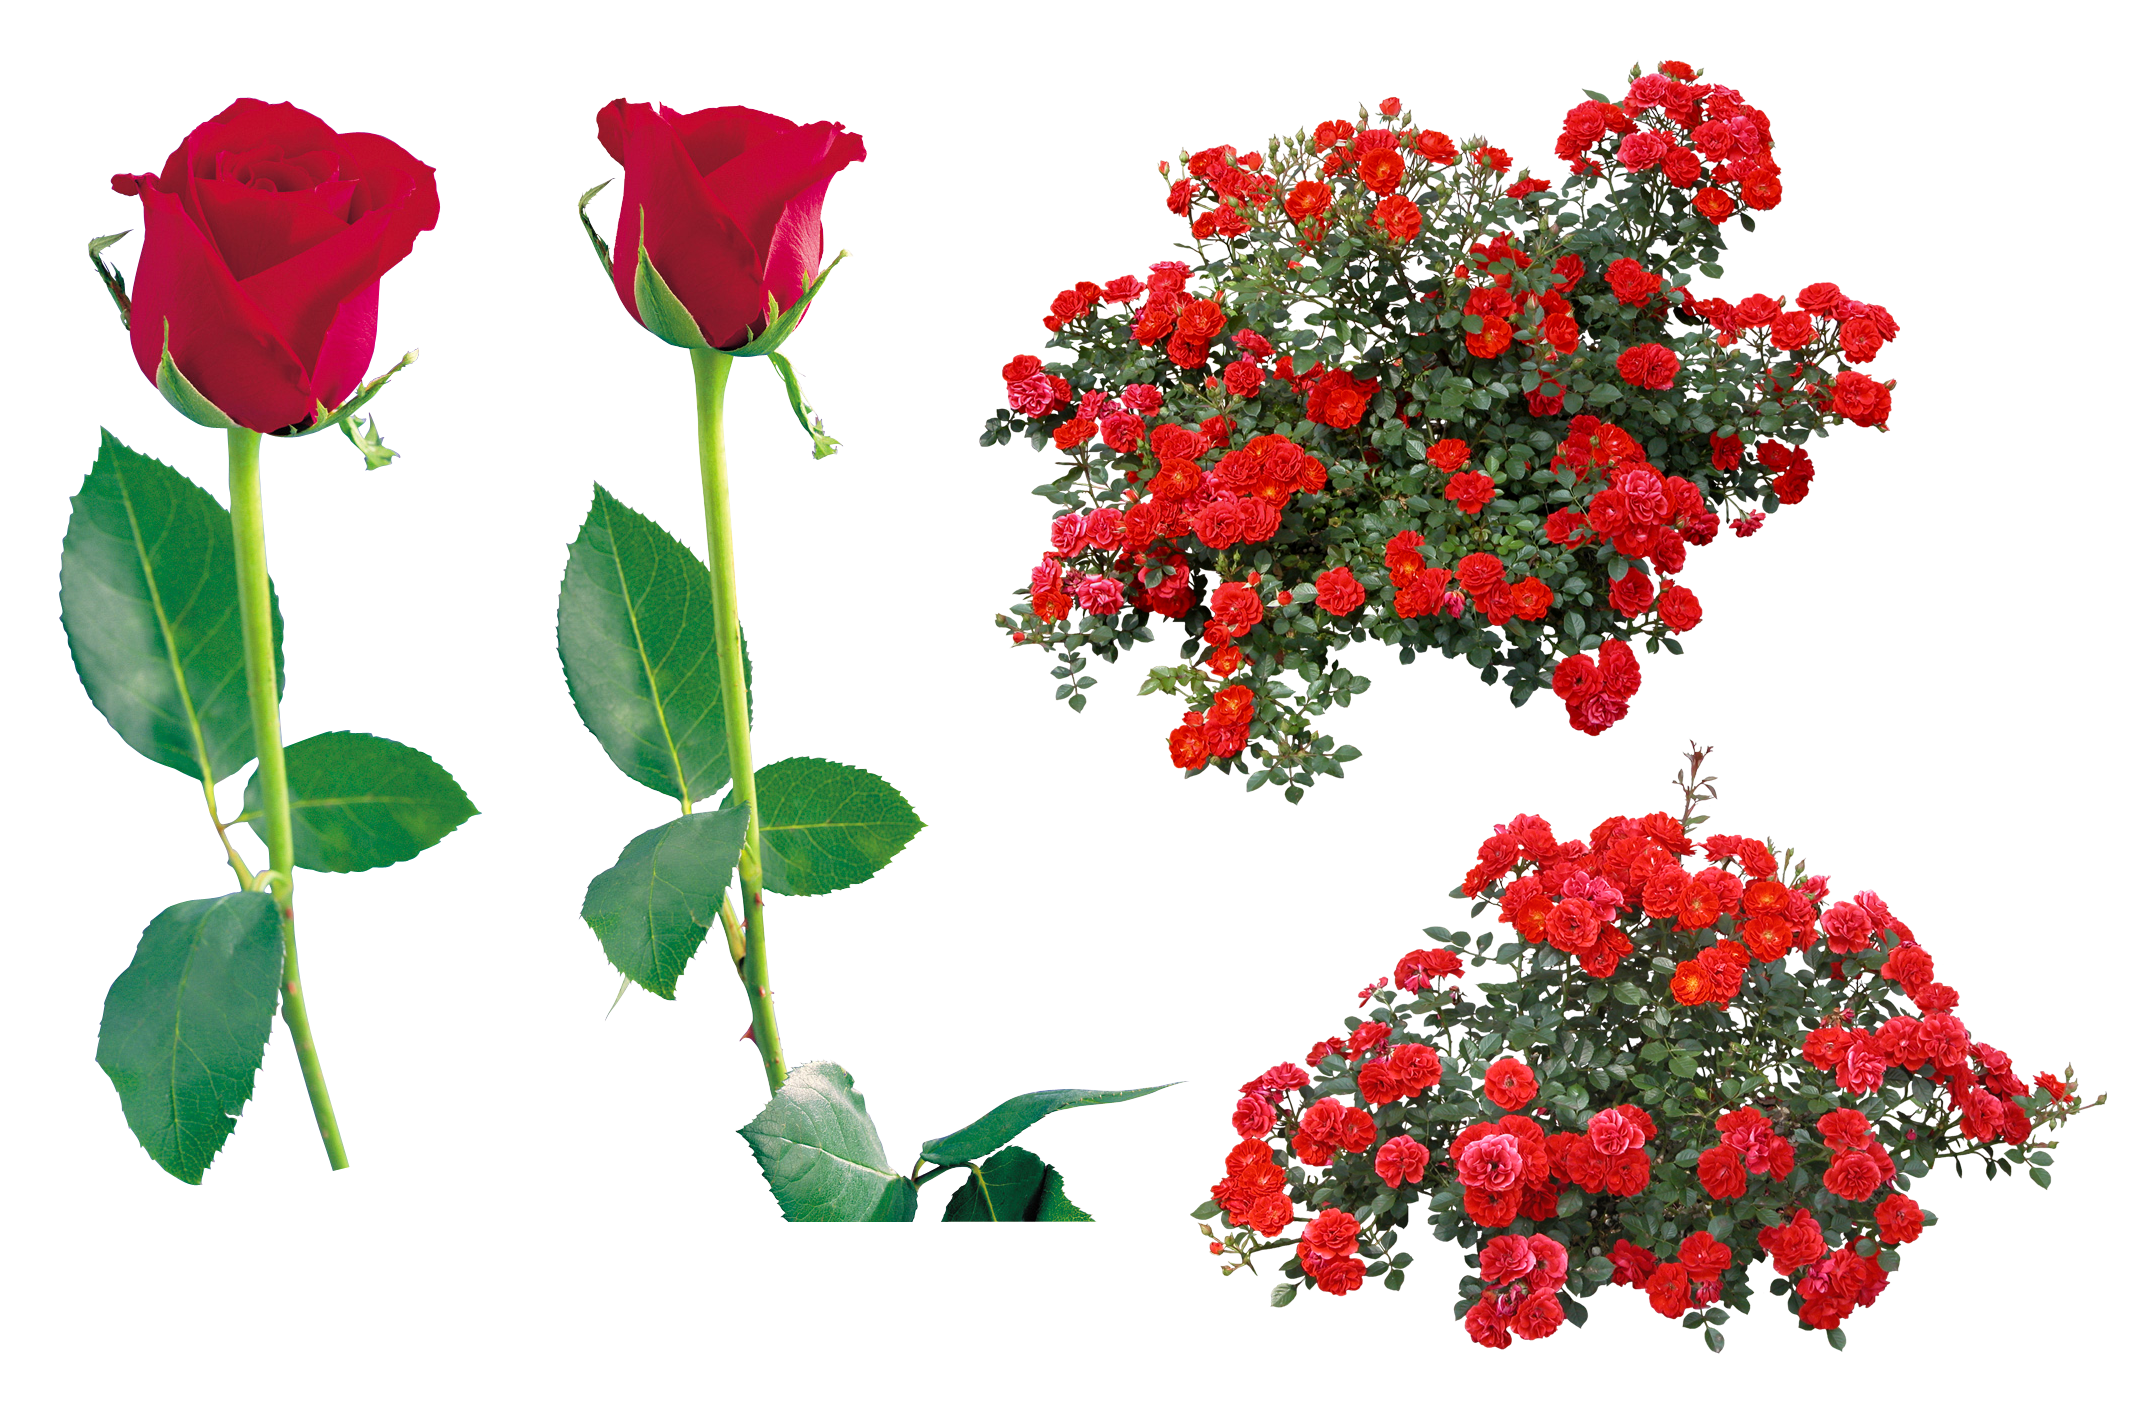 Png pictures free download. Rose flower images image